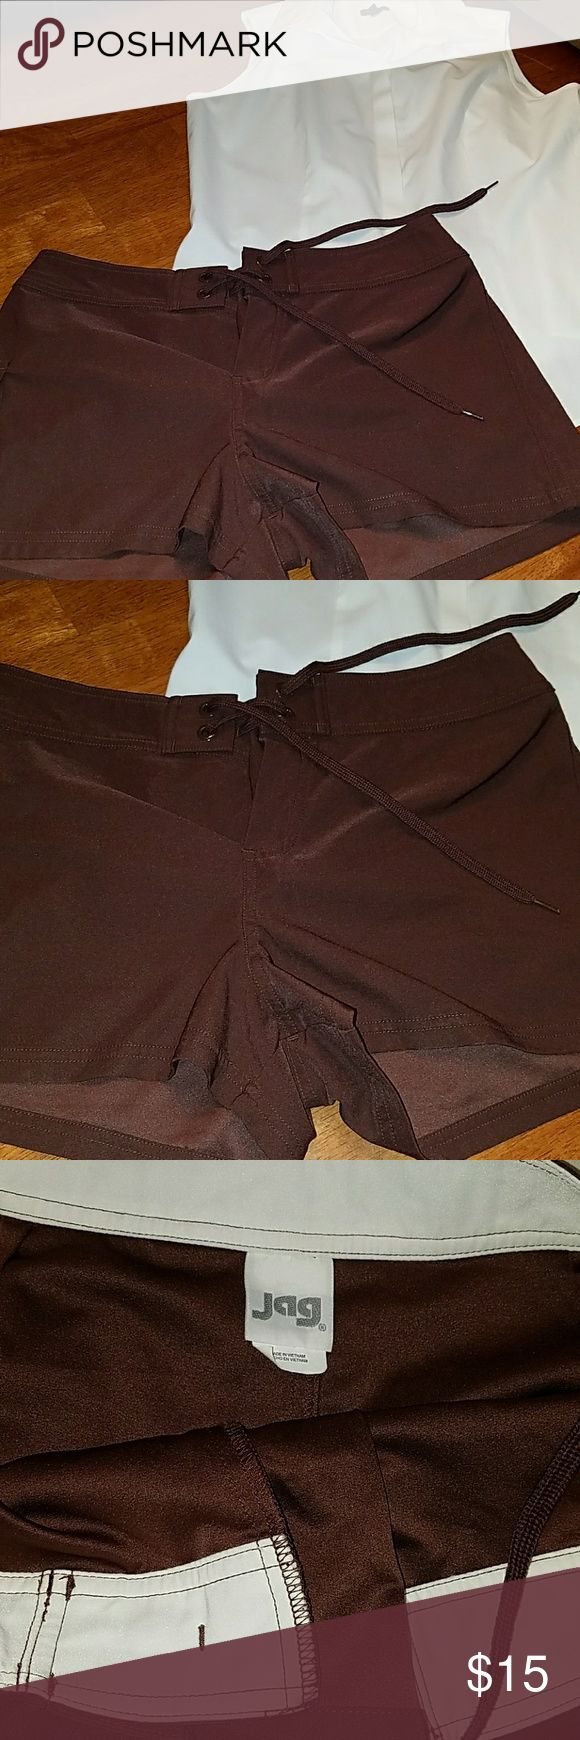 Women's chocolate brown Jag shorts size small LNC Very nice like new condition women's brown Jag shorts with cargo style pocket on the right side drawstring closure these are in Primo condition and they are from a clean non-smoking home Shorts